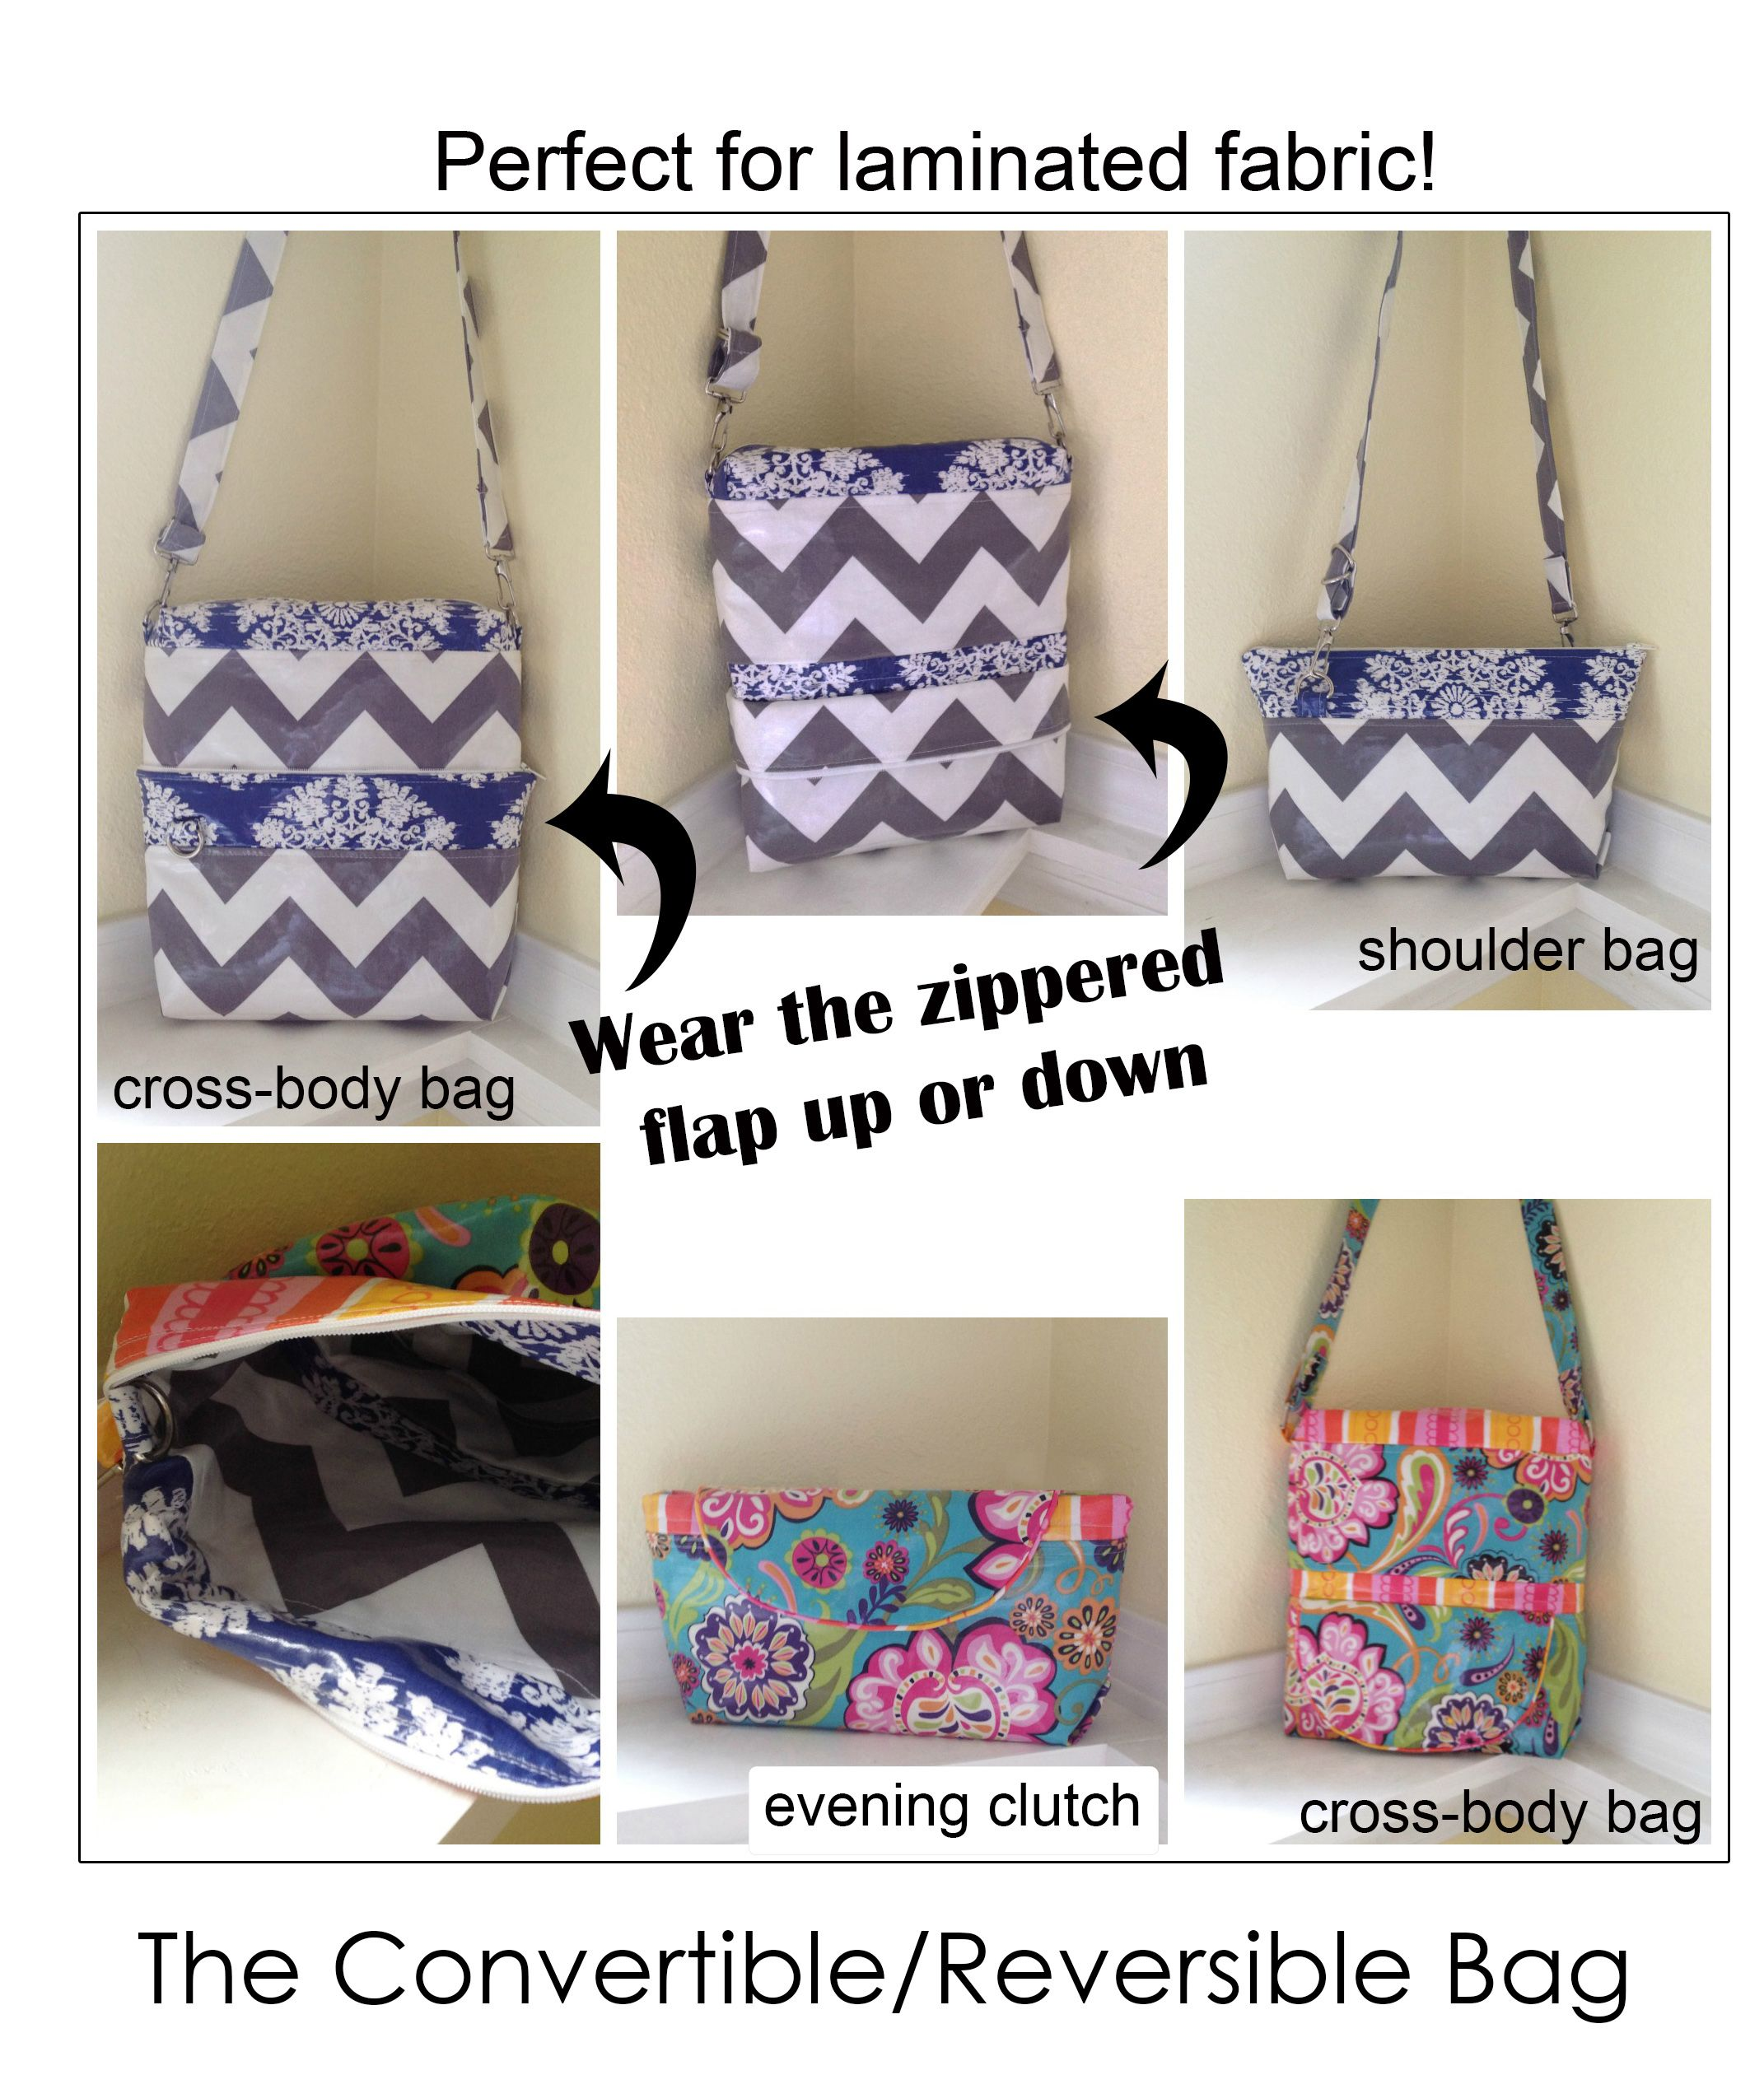 Convertible Reversible 4-in-1 Bag | Bag sewing patterns, Nest and Cozy